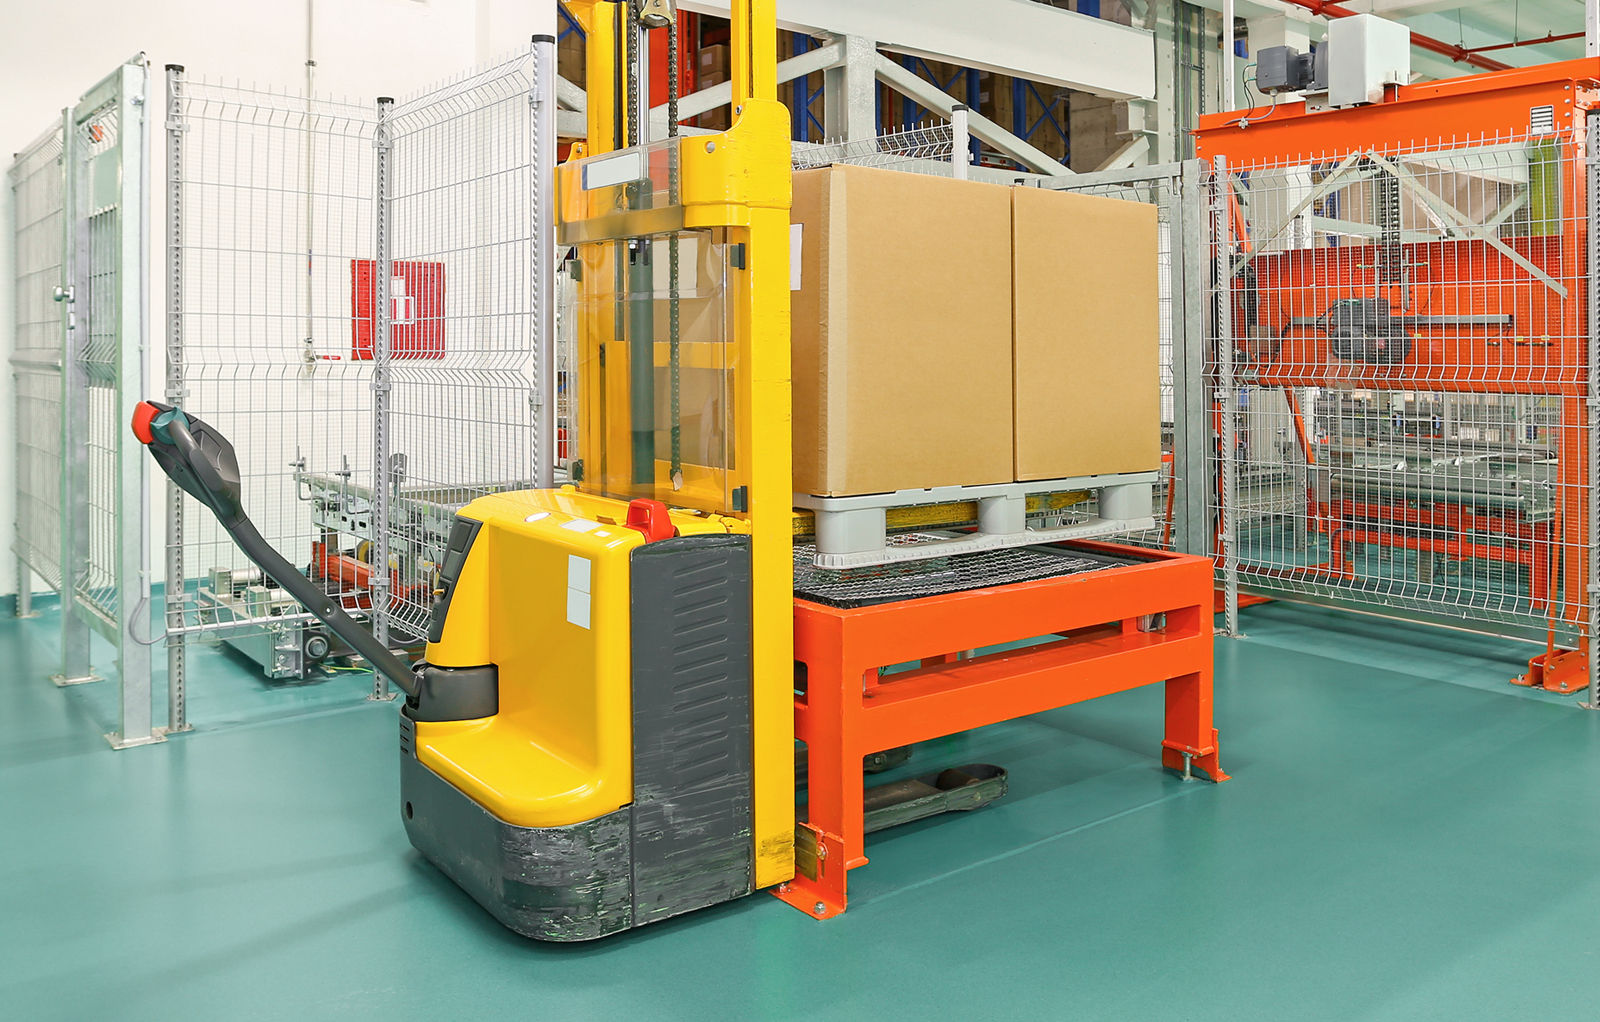 pallet-stacker-feat-img-v2